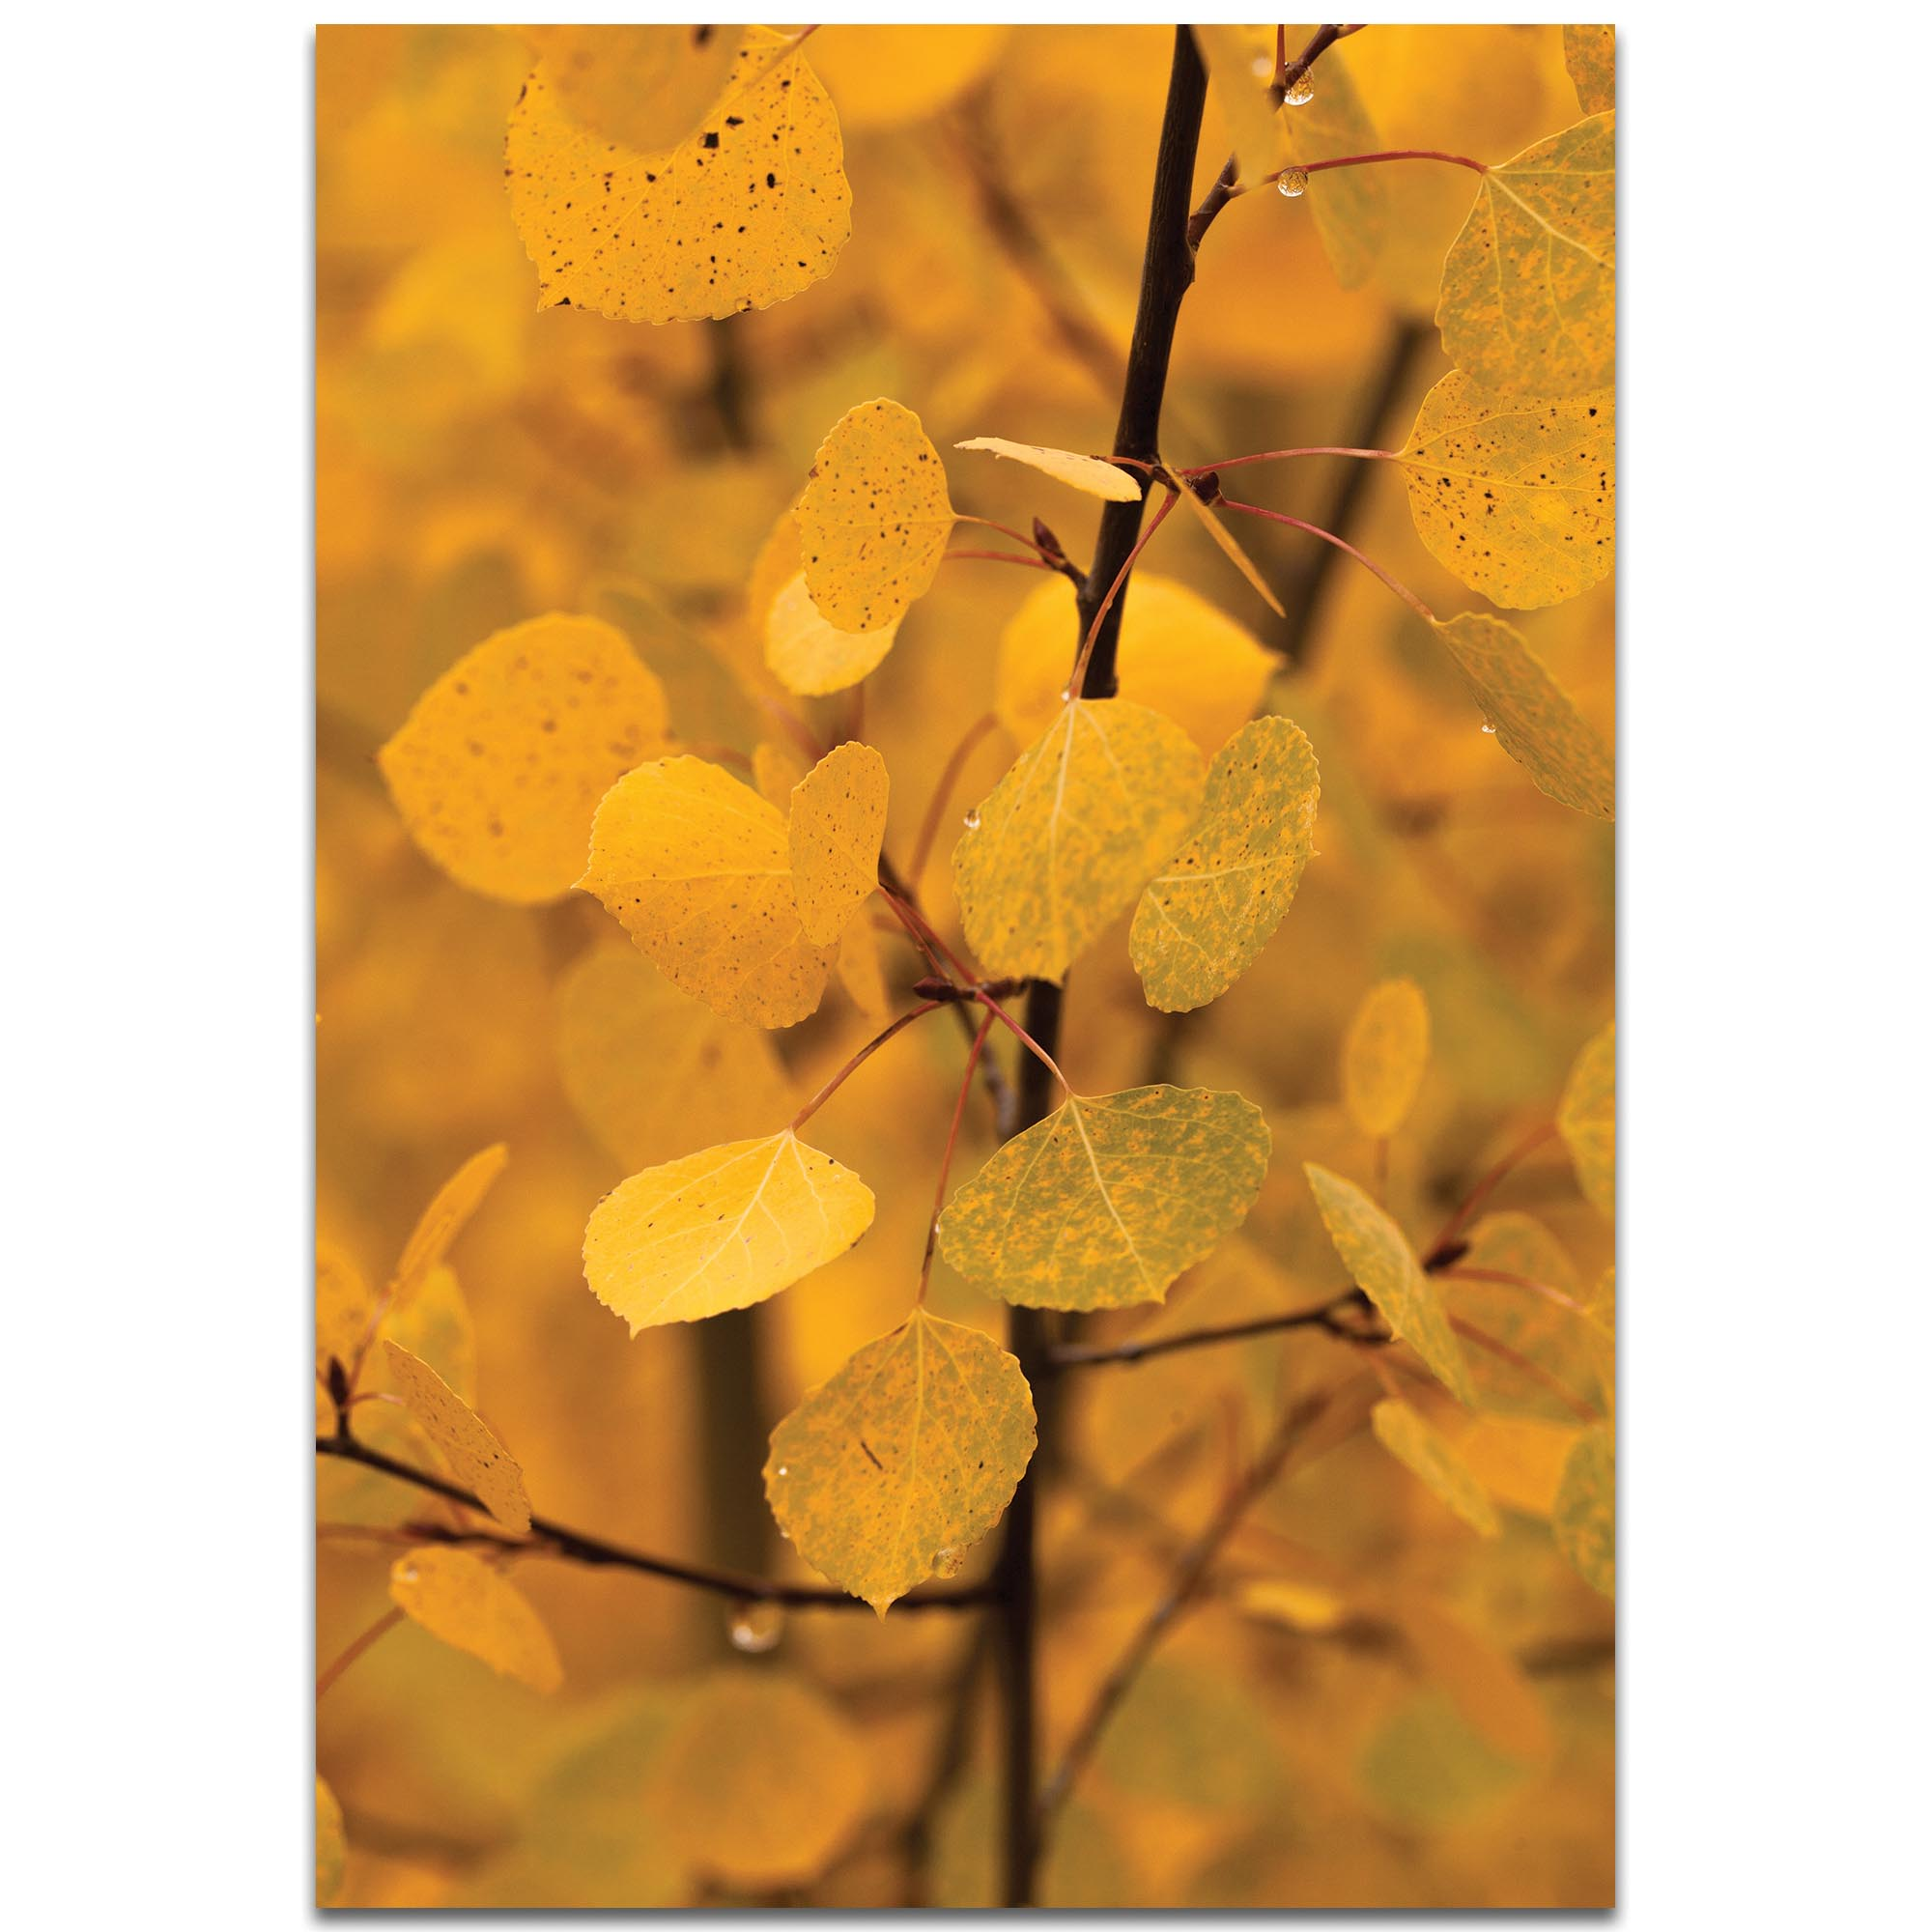 Nature Photography 'Turn to Gold' - Autumn Leaves Art on Metal or Plexiglass